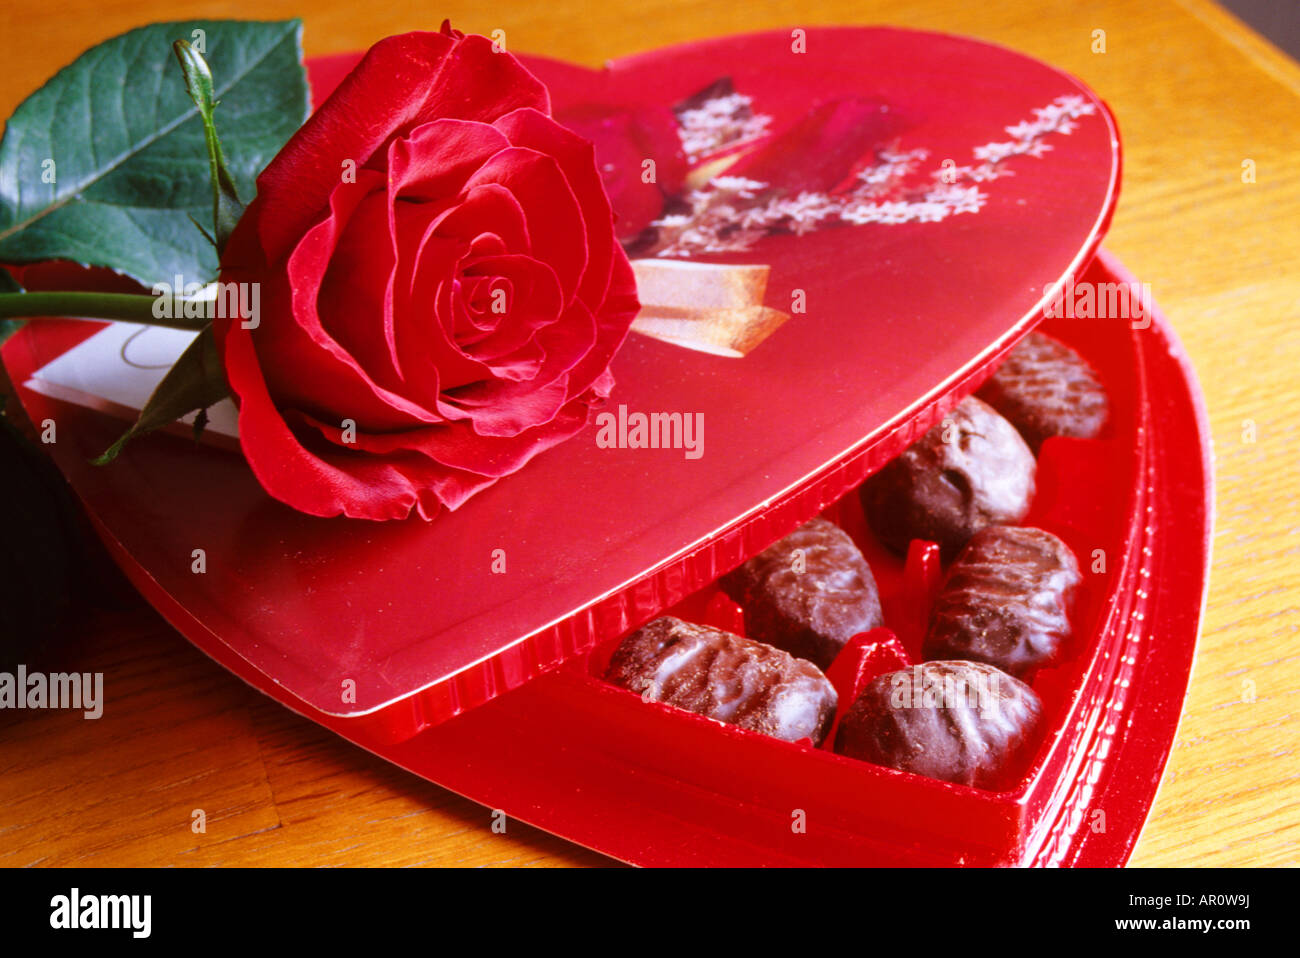 Still Life of Valentine heart chocolates with red rose - Stock Image